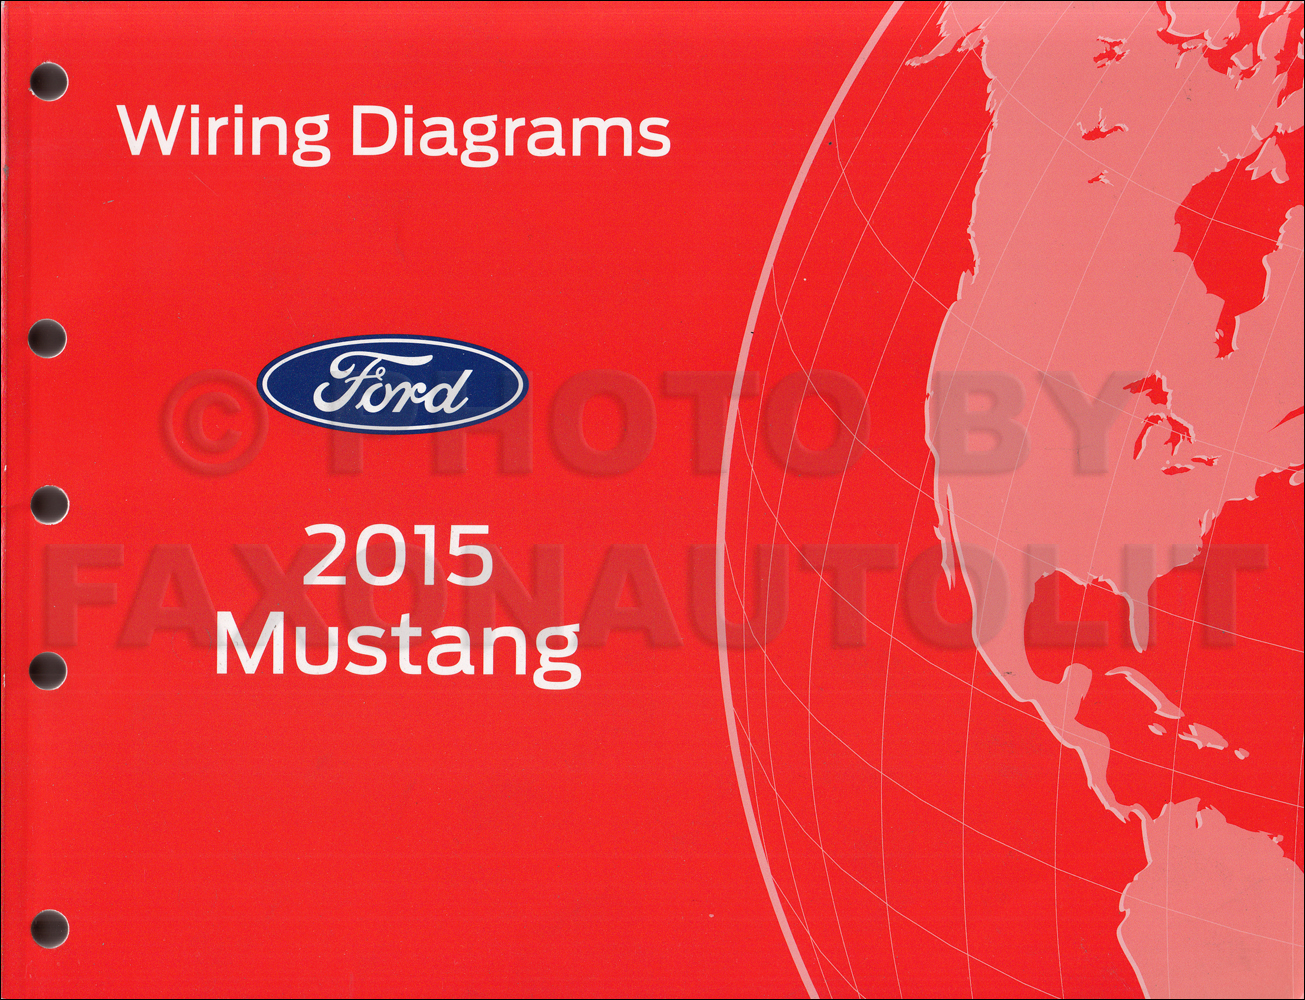 2015 Ford Mustang Wiring Diagram Manual Original P31593 on 1931 model a wiring schematic